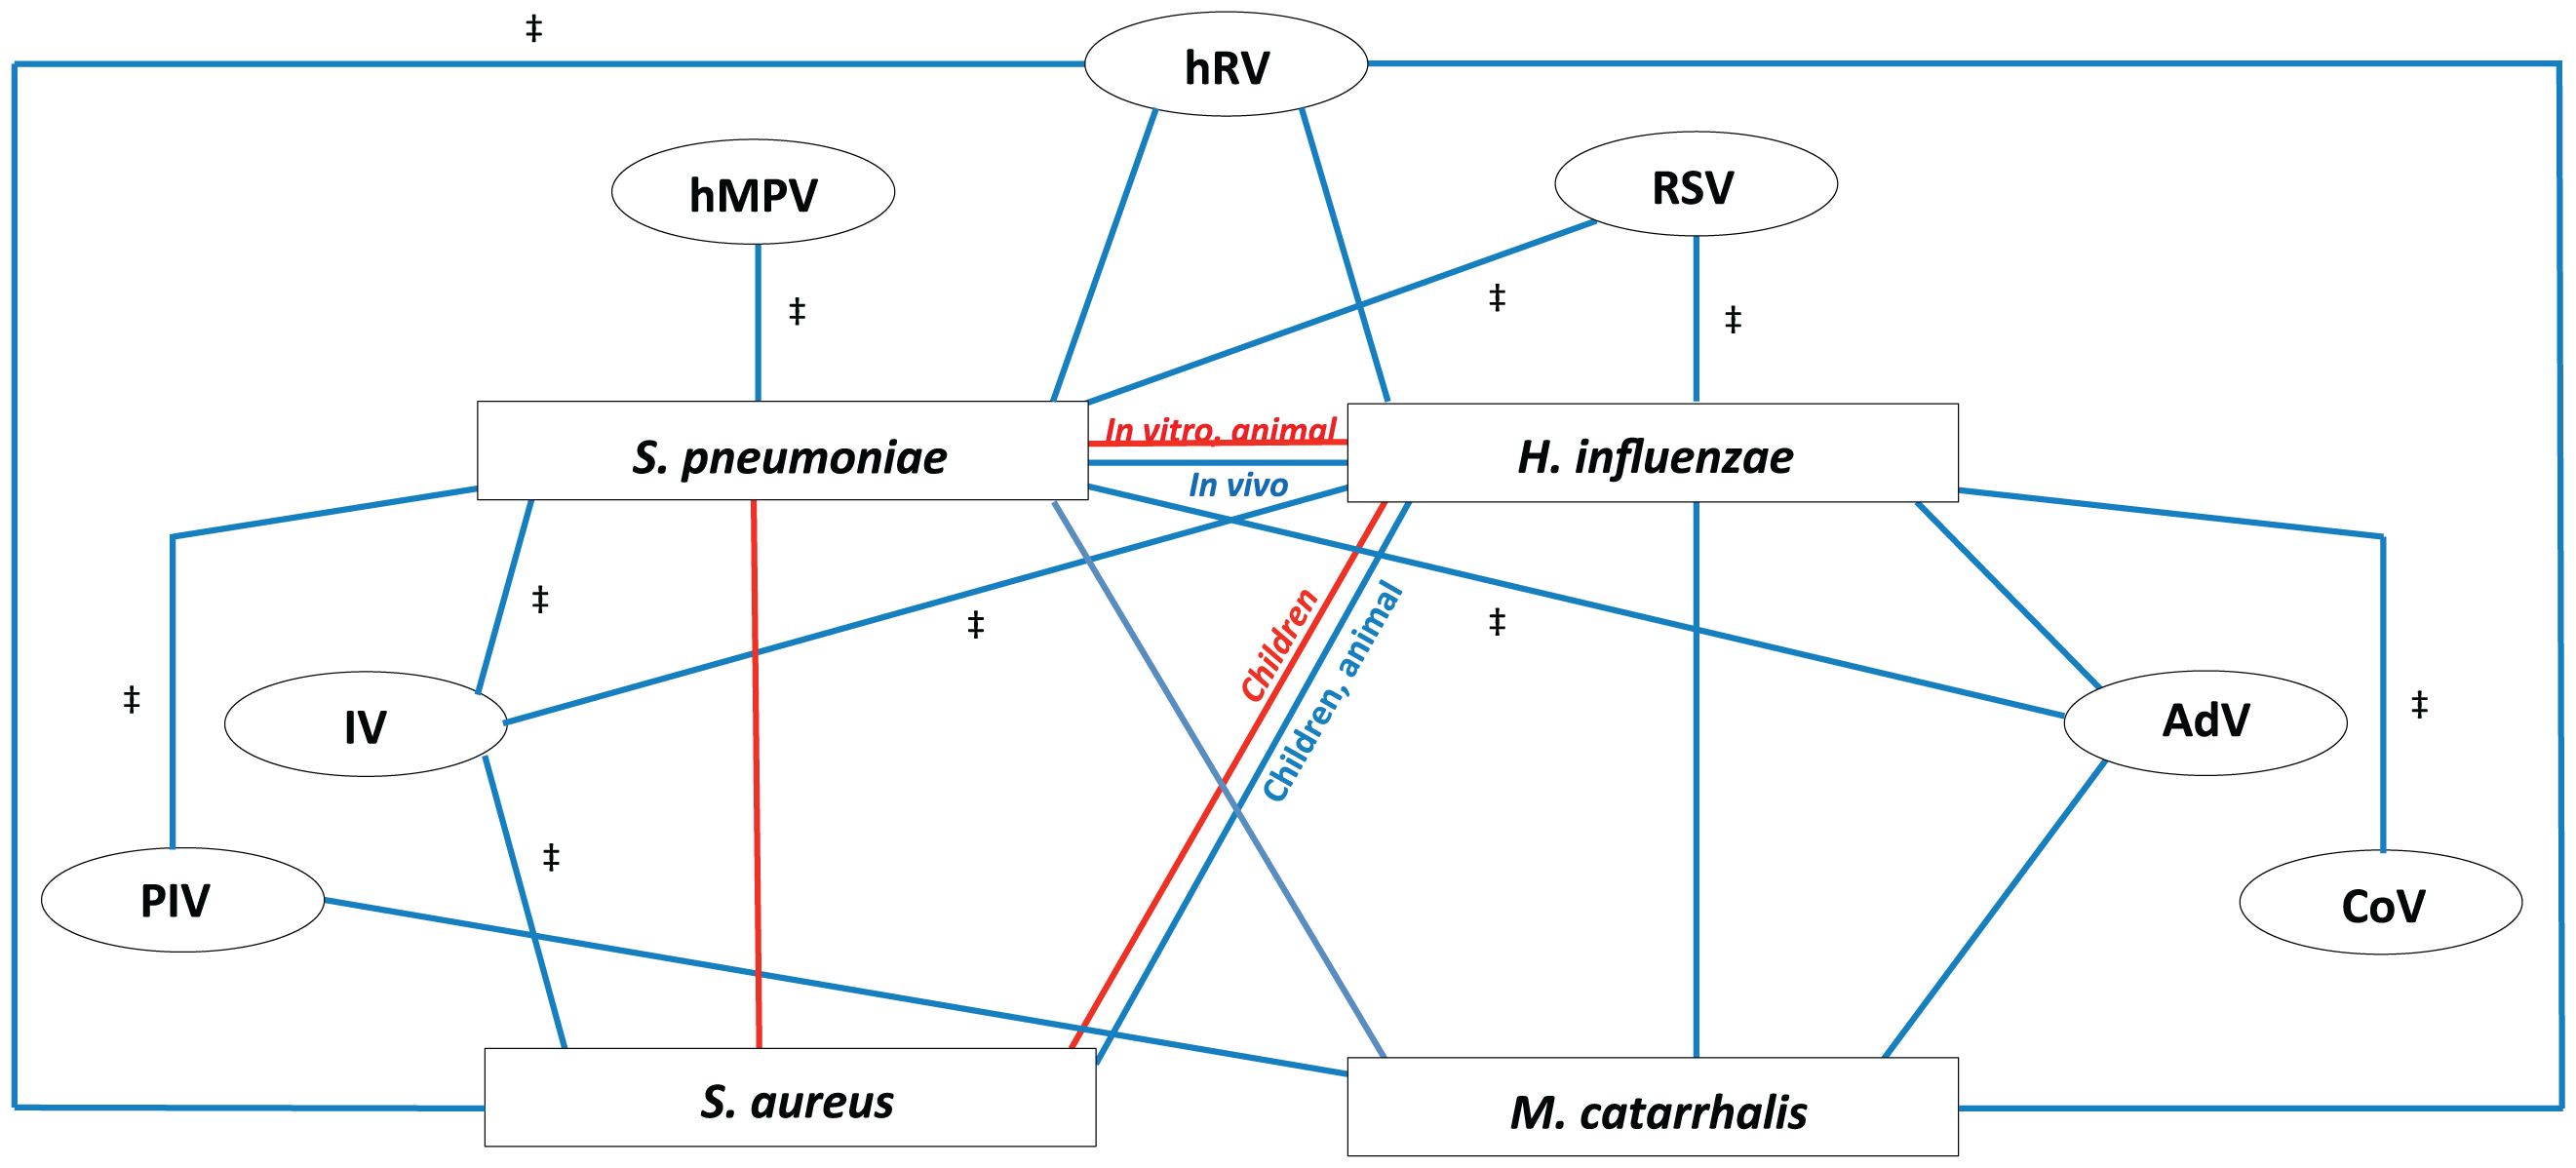 Proposed model of bacterial and viral interactions.